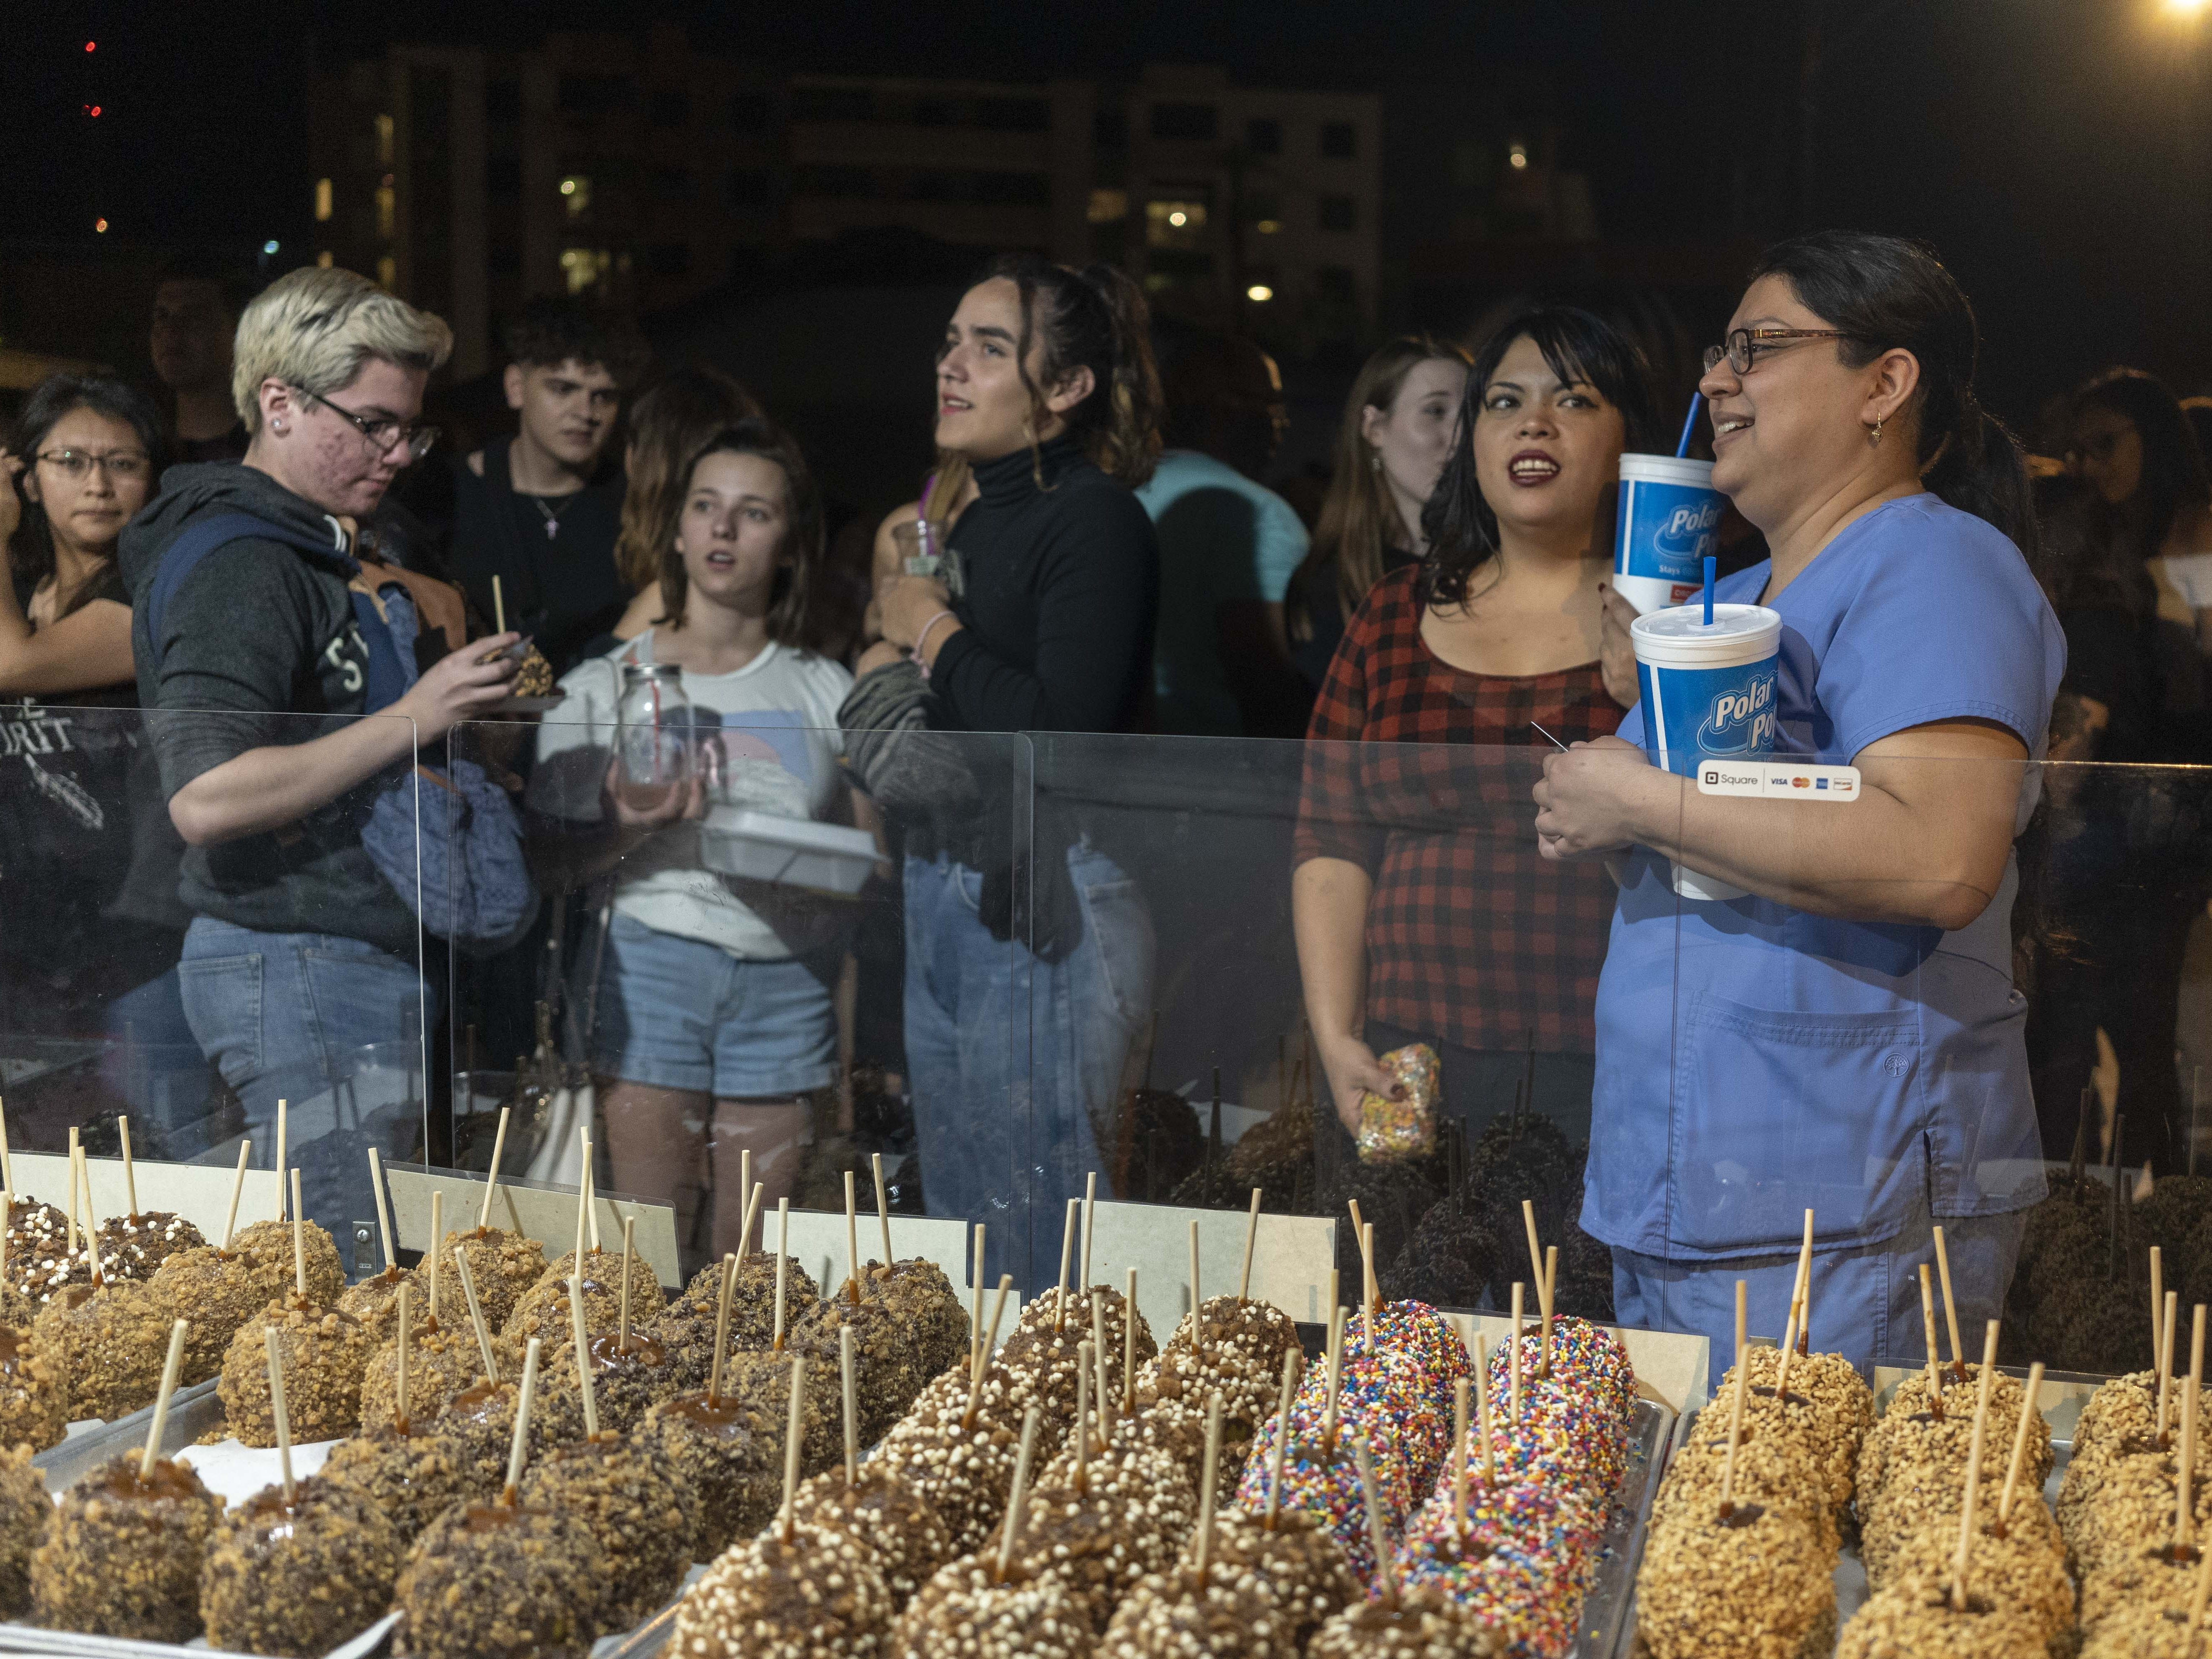 People enjoy food and artwork during the First Friday Art walk, on Roosevelt Street in Downtown Phoenix, on Oct. 5, 2018.